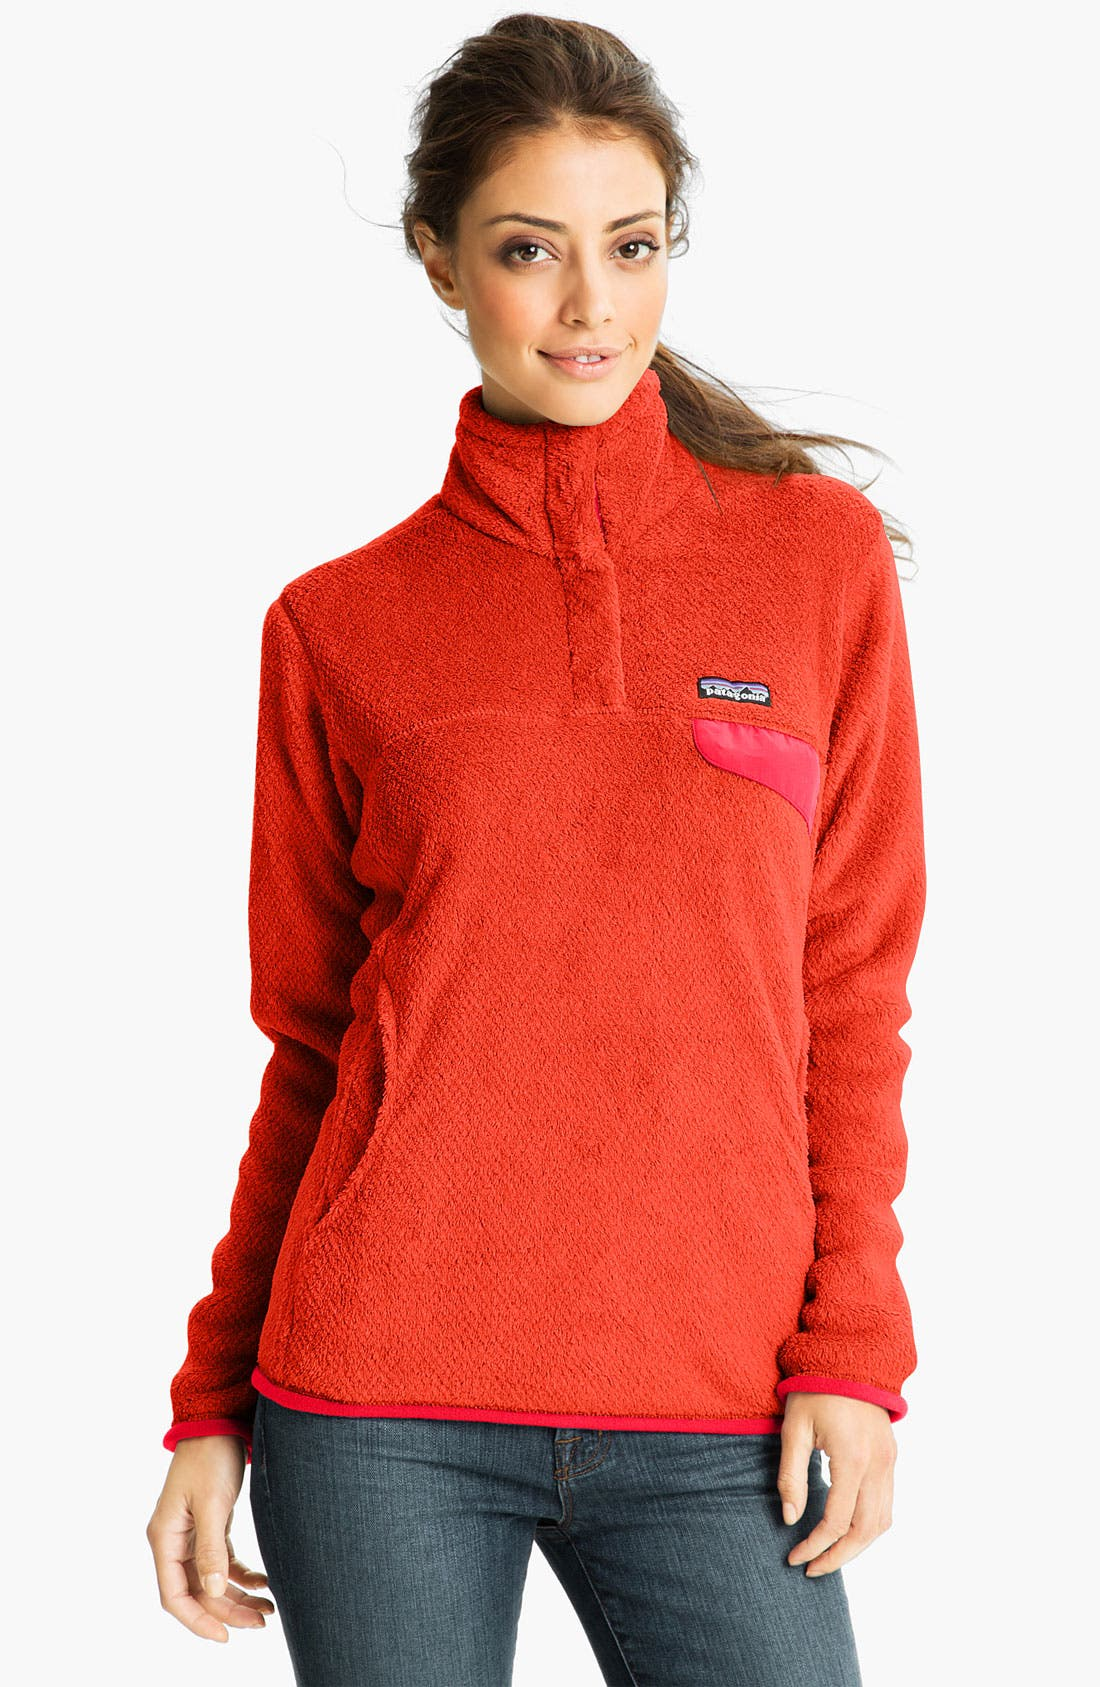 Re-Tool Snap-T<sup>®</sup> Fleece Pullover,                             Main thumbnail 1, color,                             Crawdad